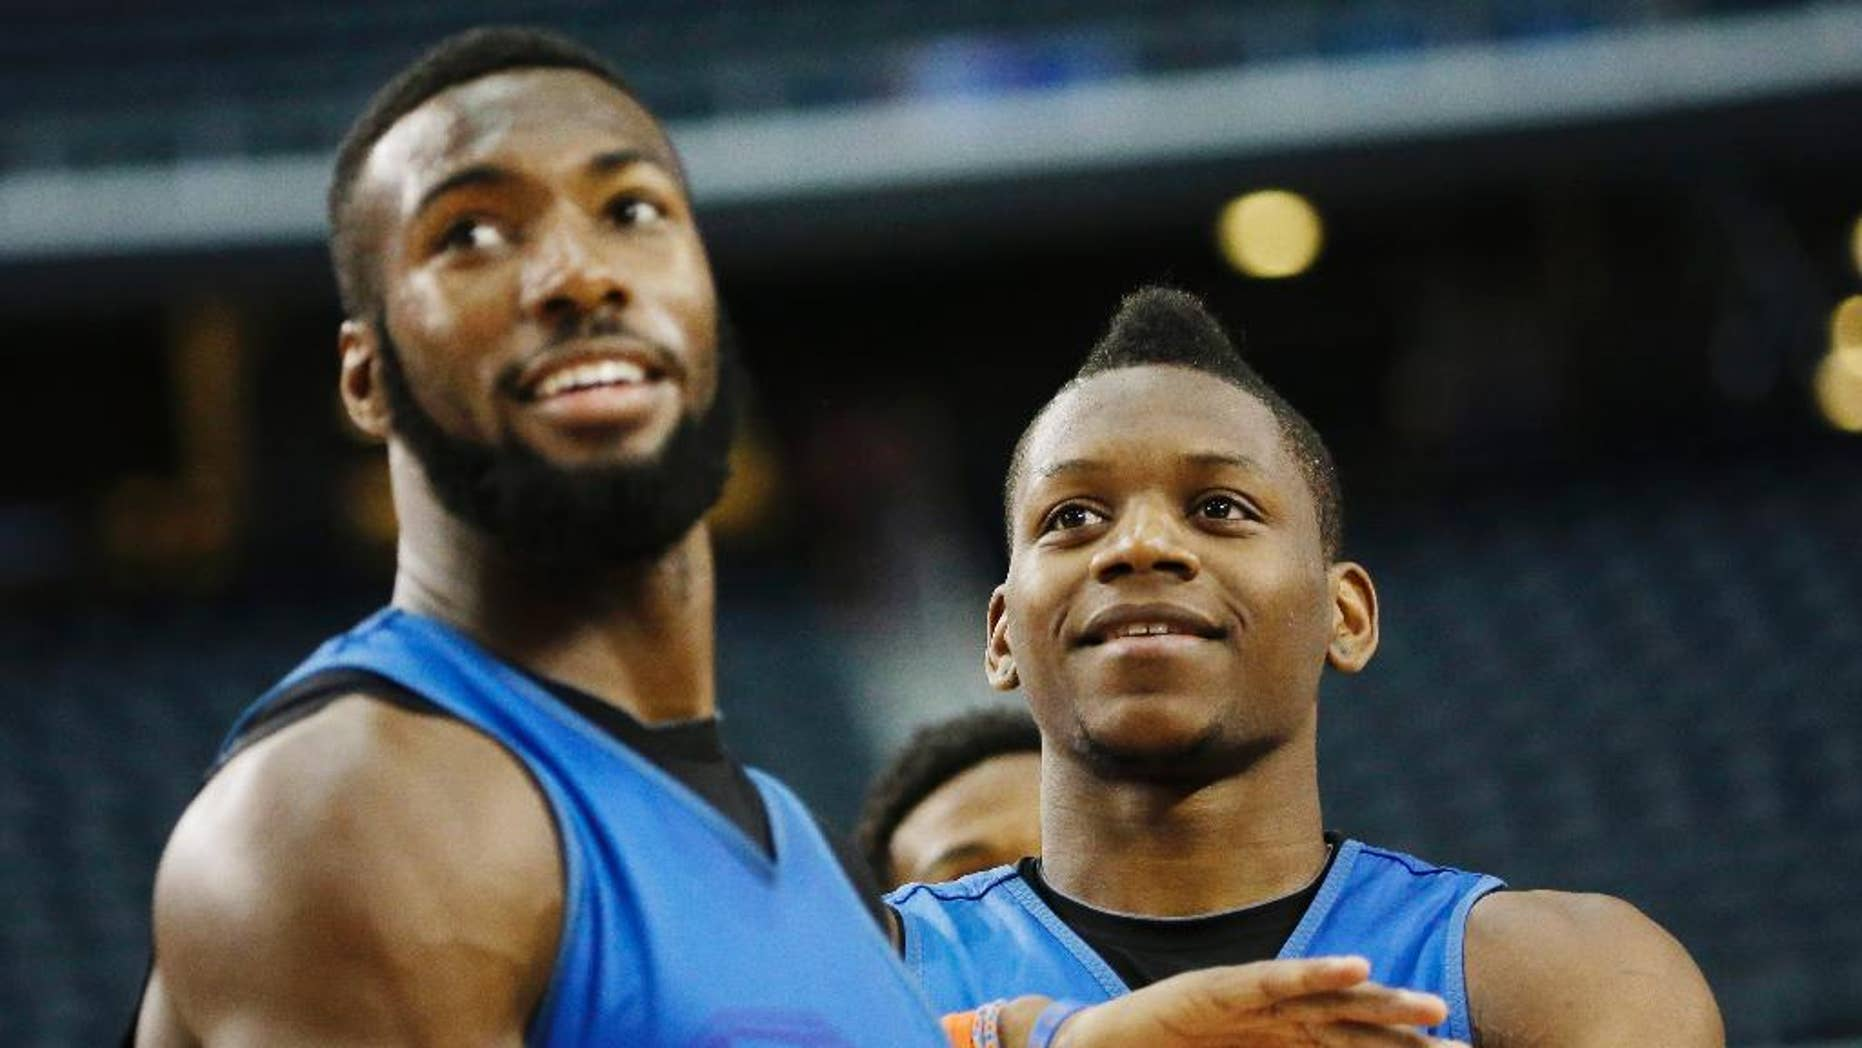 Florida center Patric Young, left, and forward Will Yeguete joke around during practice for their NCAA Final Four tournament college basketball semifinal game Friday, April 4, 2014, in Dallas. Florida plays Connecticut on Saturday, April 5, 2014. (AP Photo/David J. Phillip)